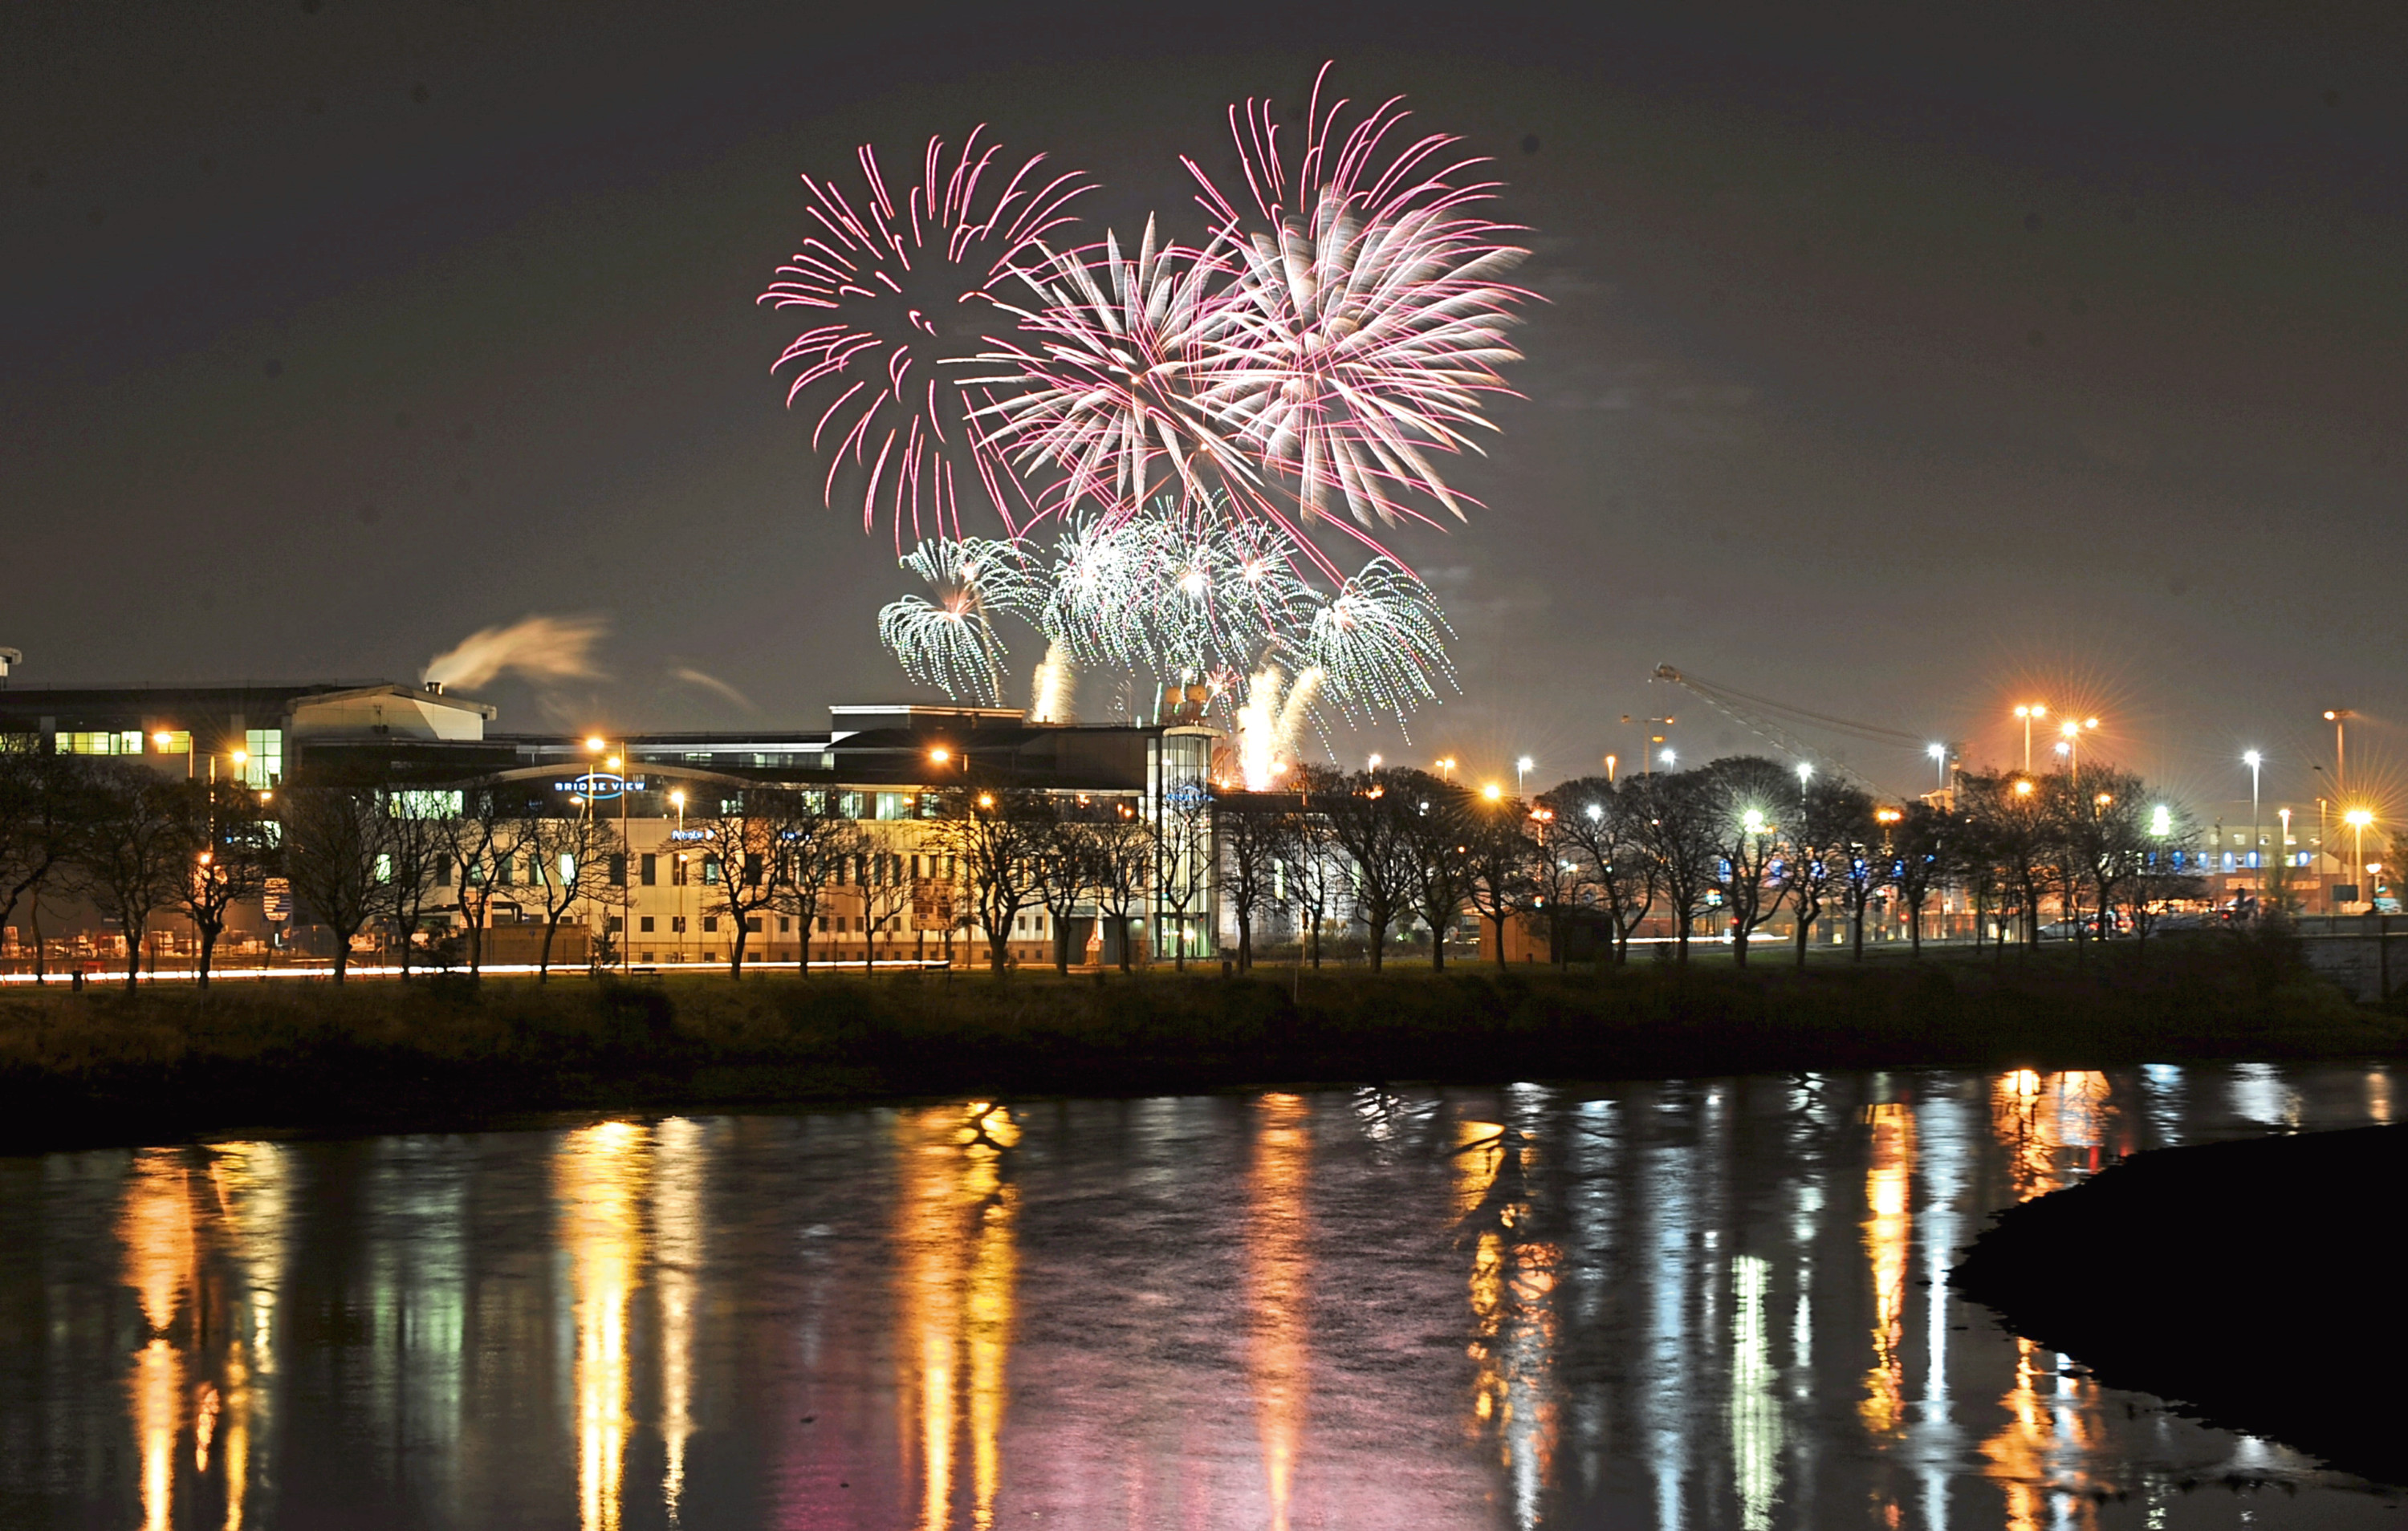 Public displays are popular but there are concerns about the use and sale of fireworks to individuals